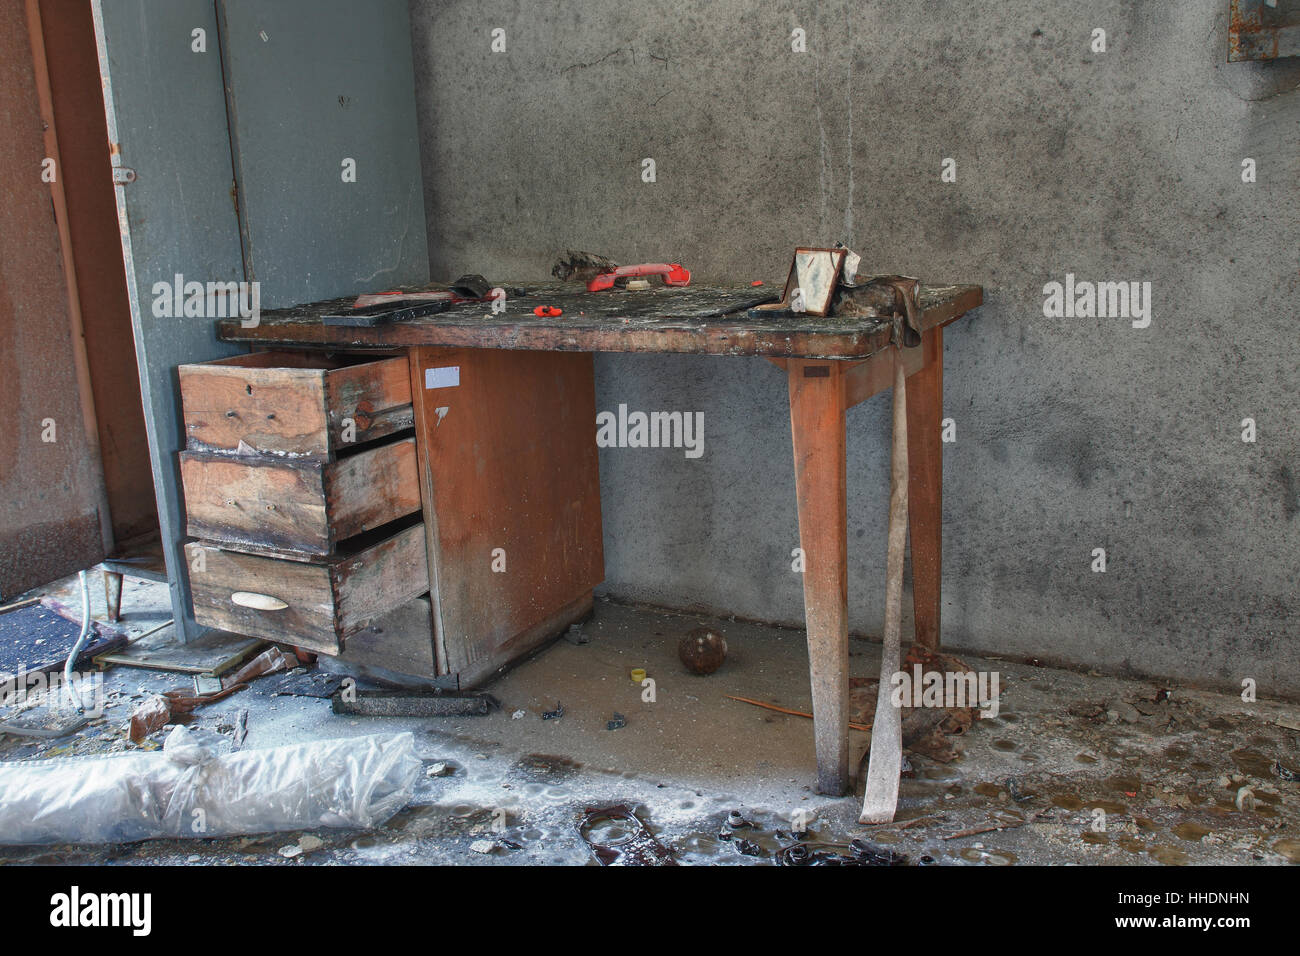 Photo from demolition  textile  factory,broken table. - Stock Image